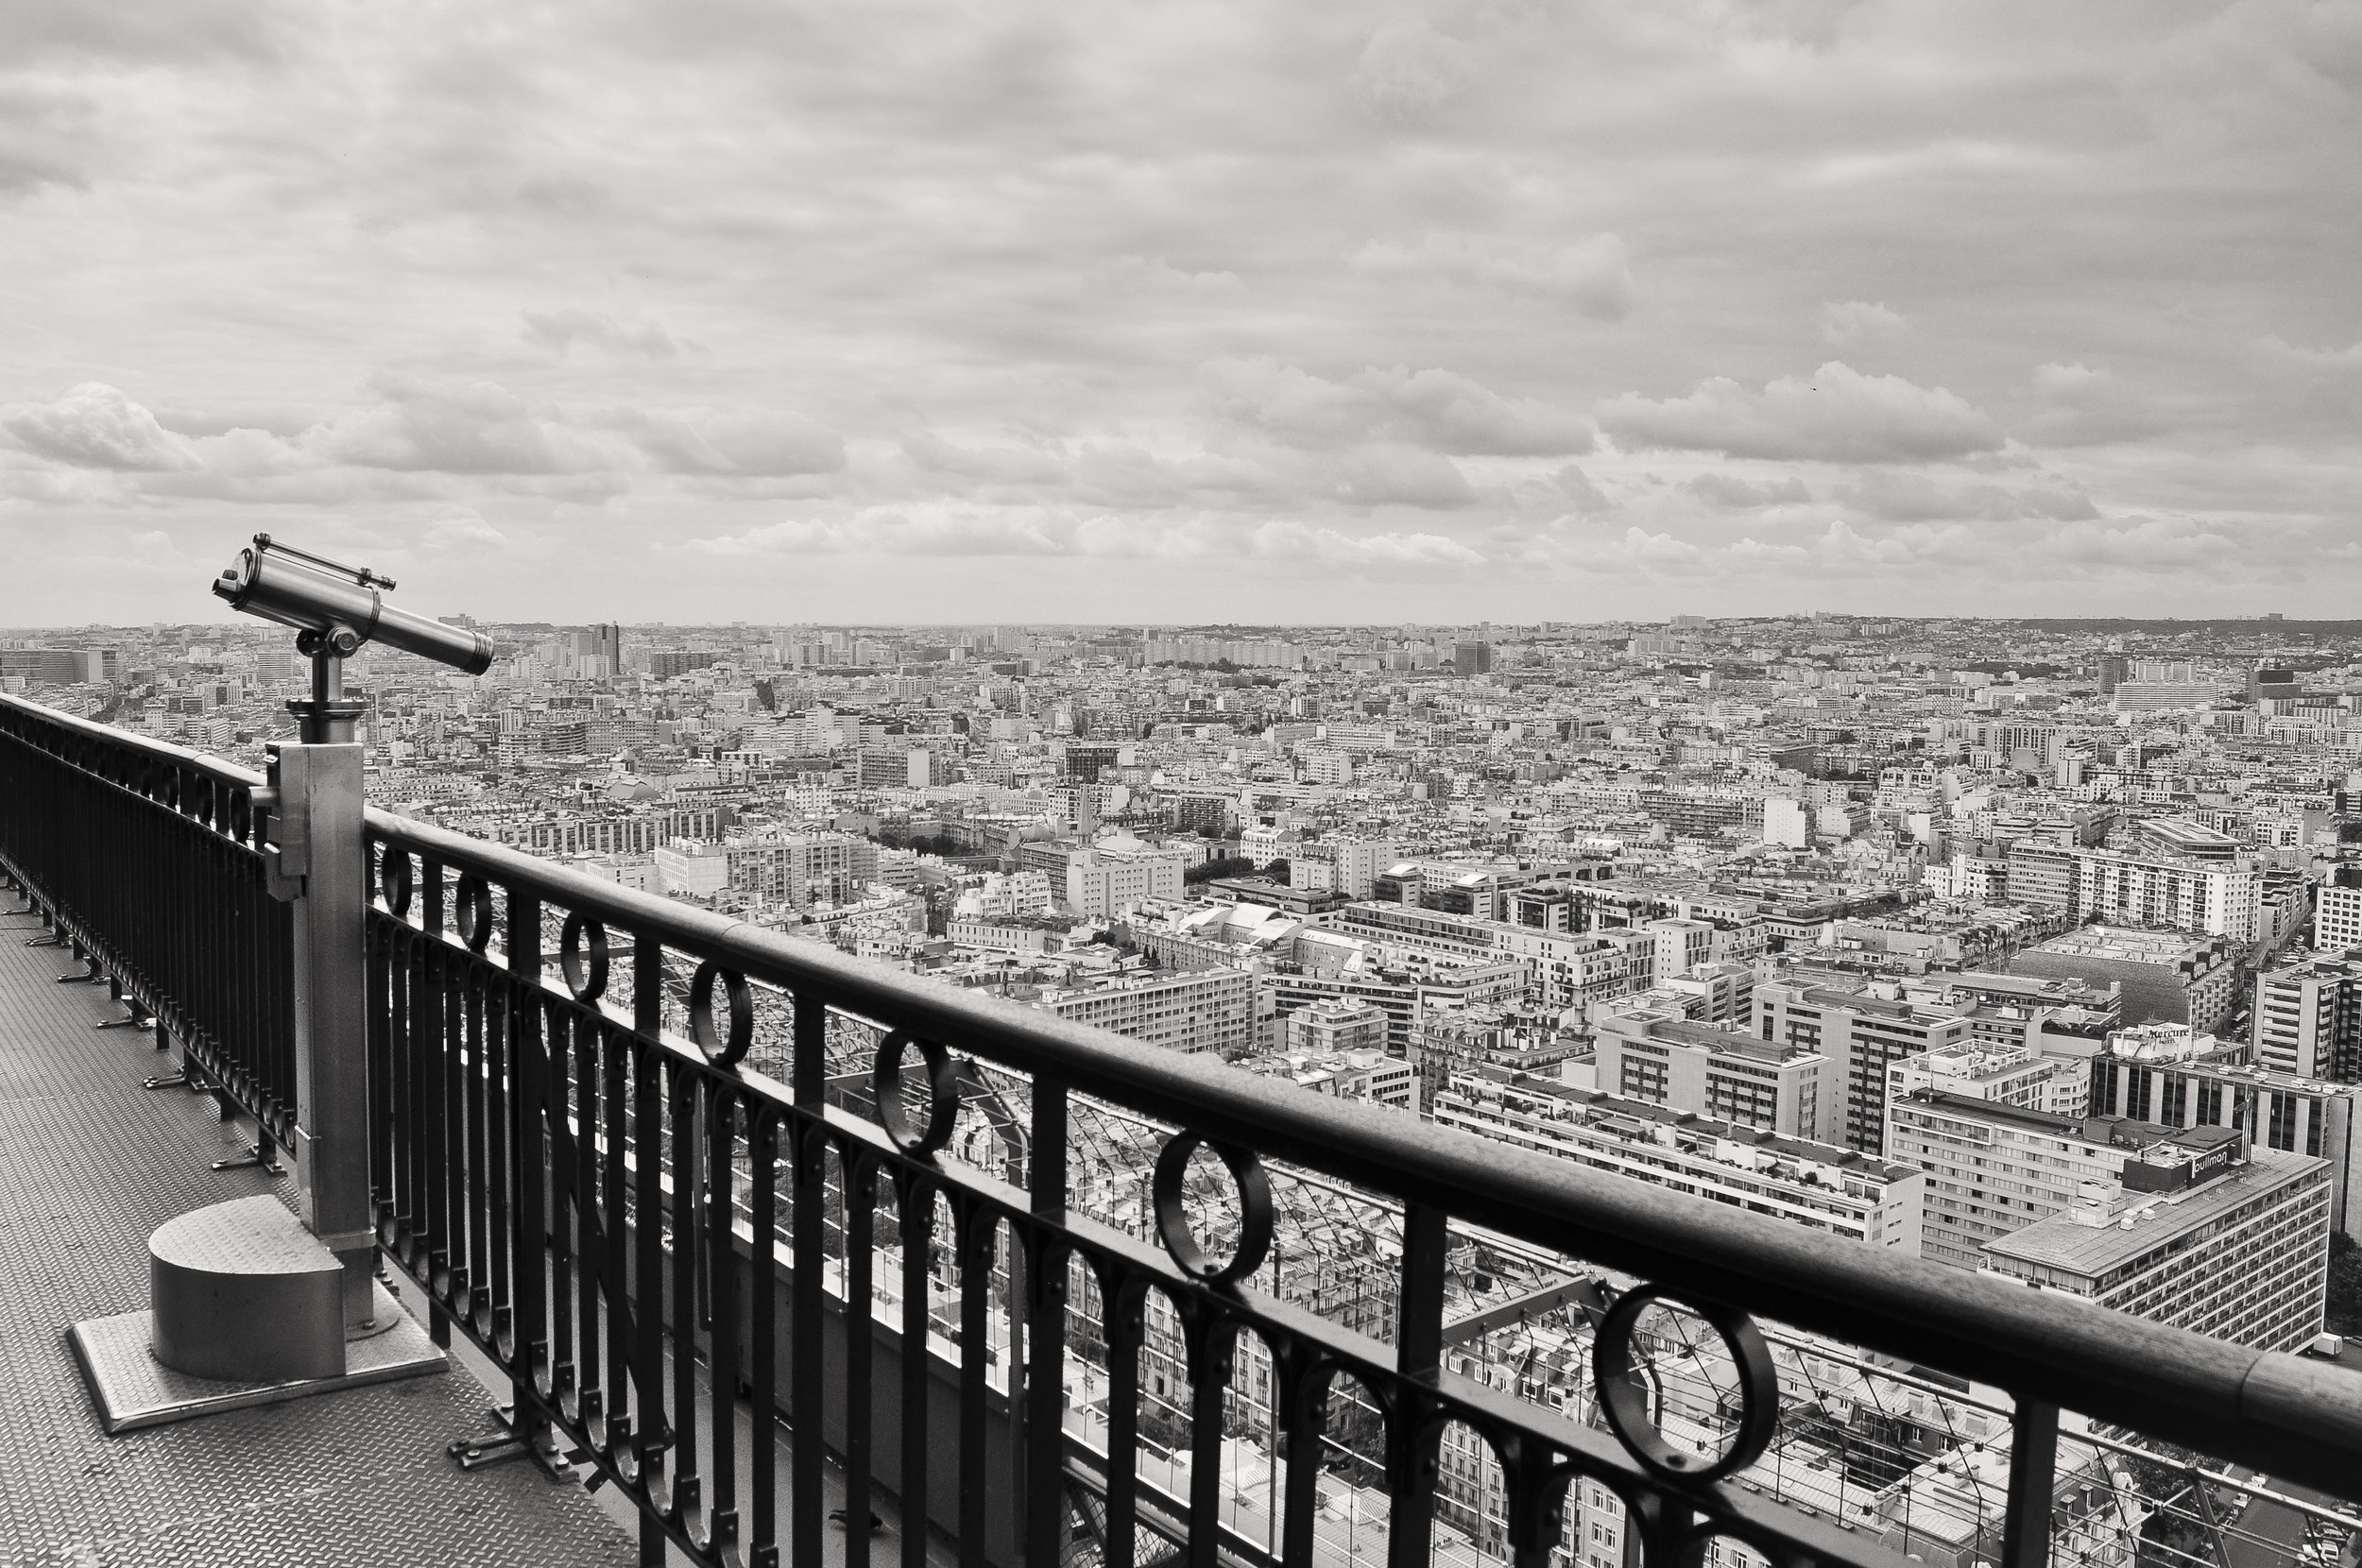 View From the Eiffel Tower, Paris, France, 2011